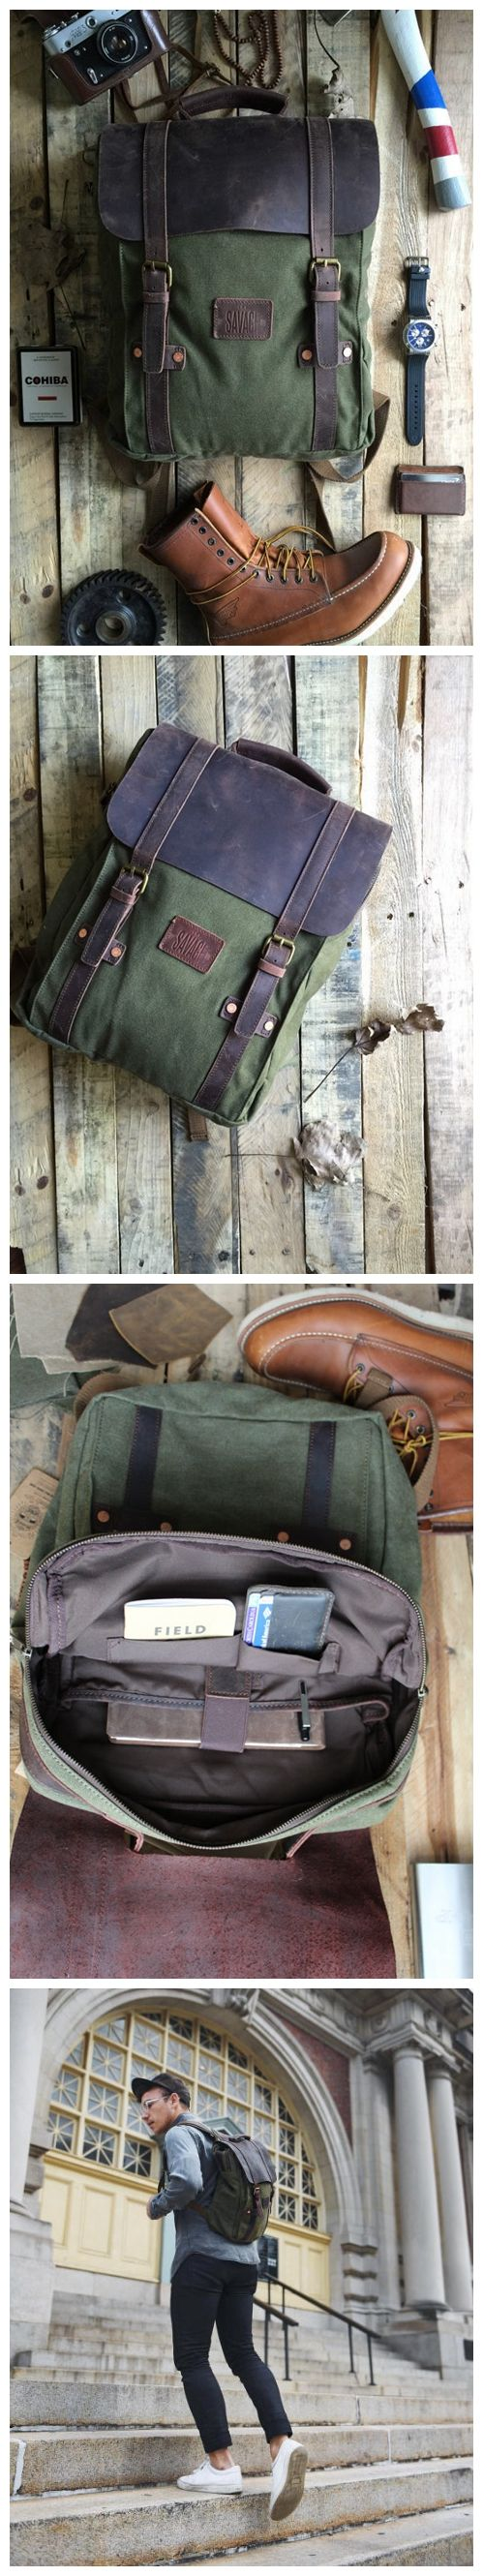 HOT SALE CANVAS LEATHER BACKPACK, WAXED CANVAS BACKPACK SCHOOL BACKPACK